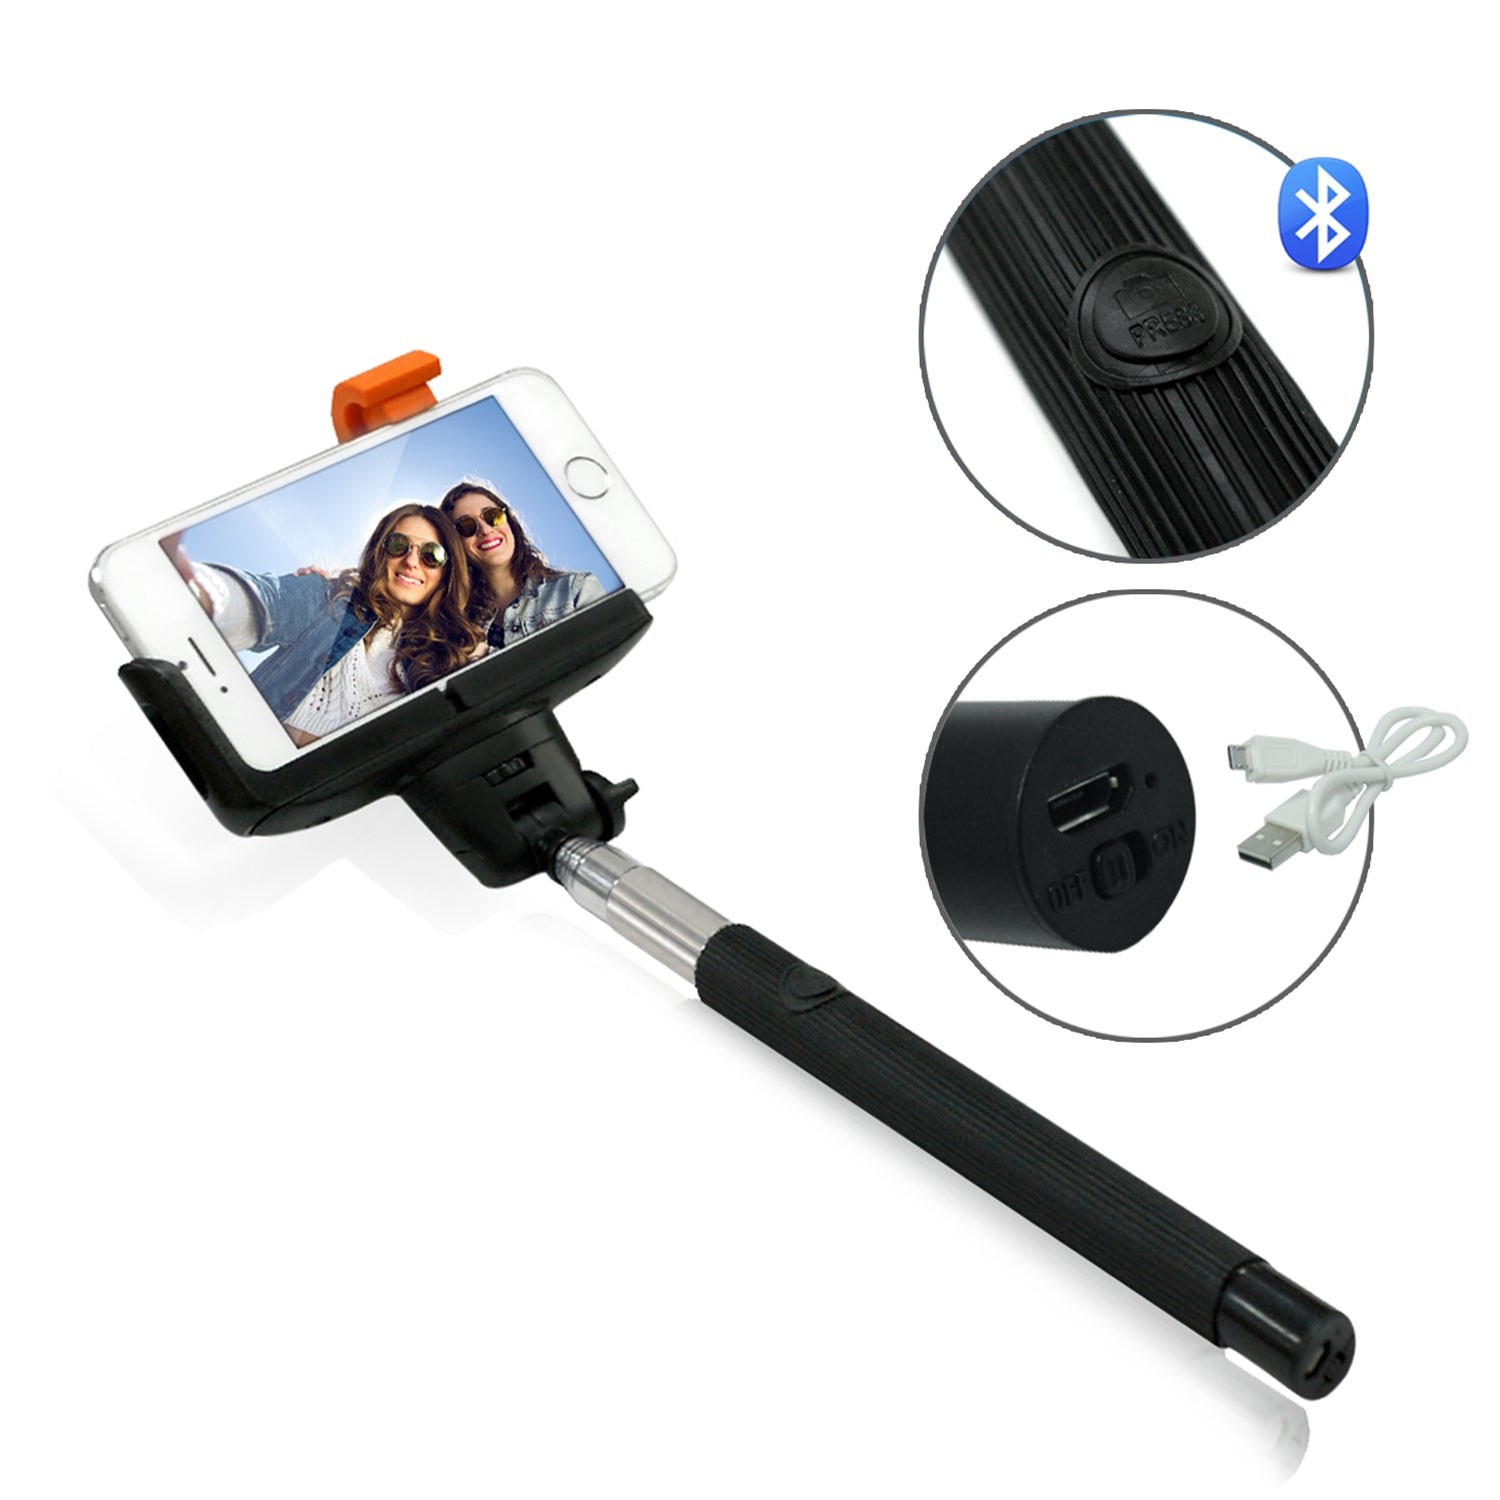 Loadstone Studio Extendable Selfie Stick and Cellphone Holding Spring Clip for Portrait Bluetooth on iPhone and Android, Monopod Cell-phone Tripod, USB Charging Cable, WMLS4662